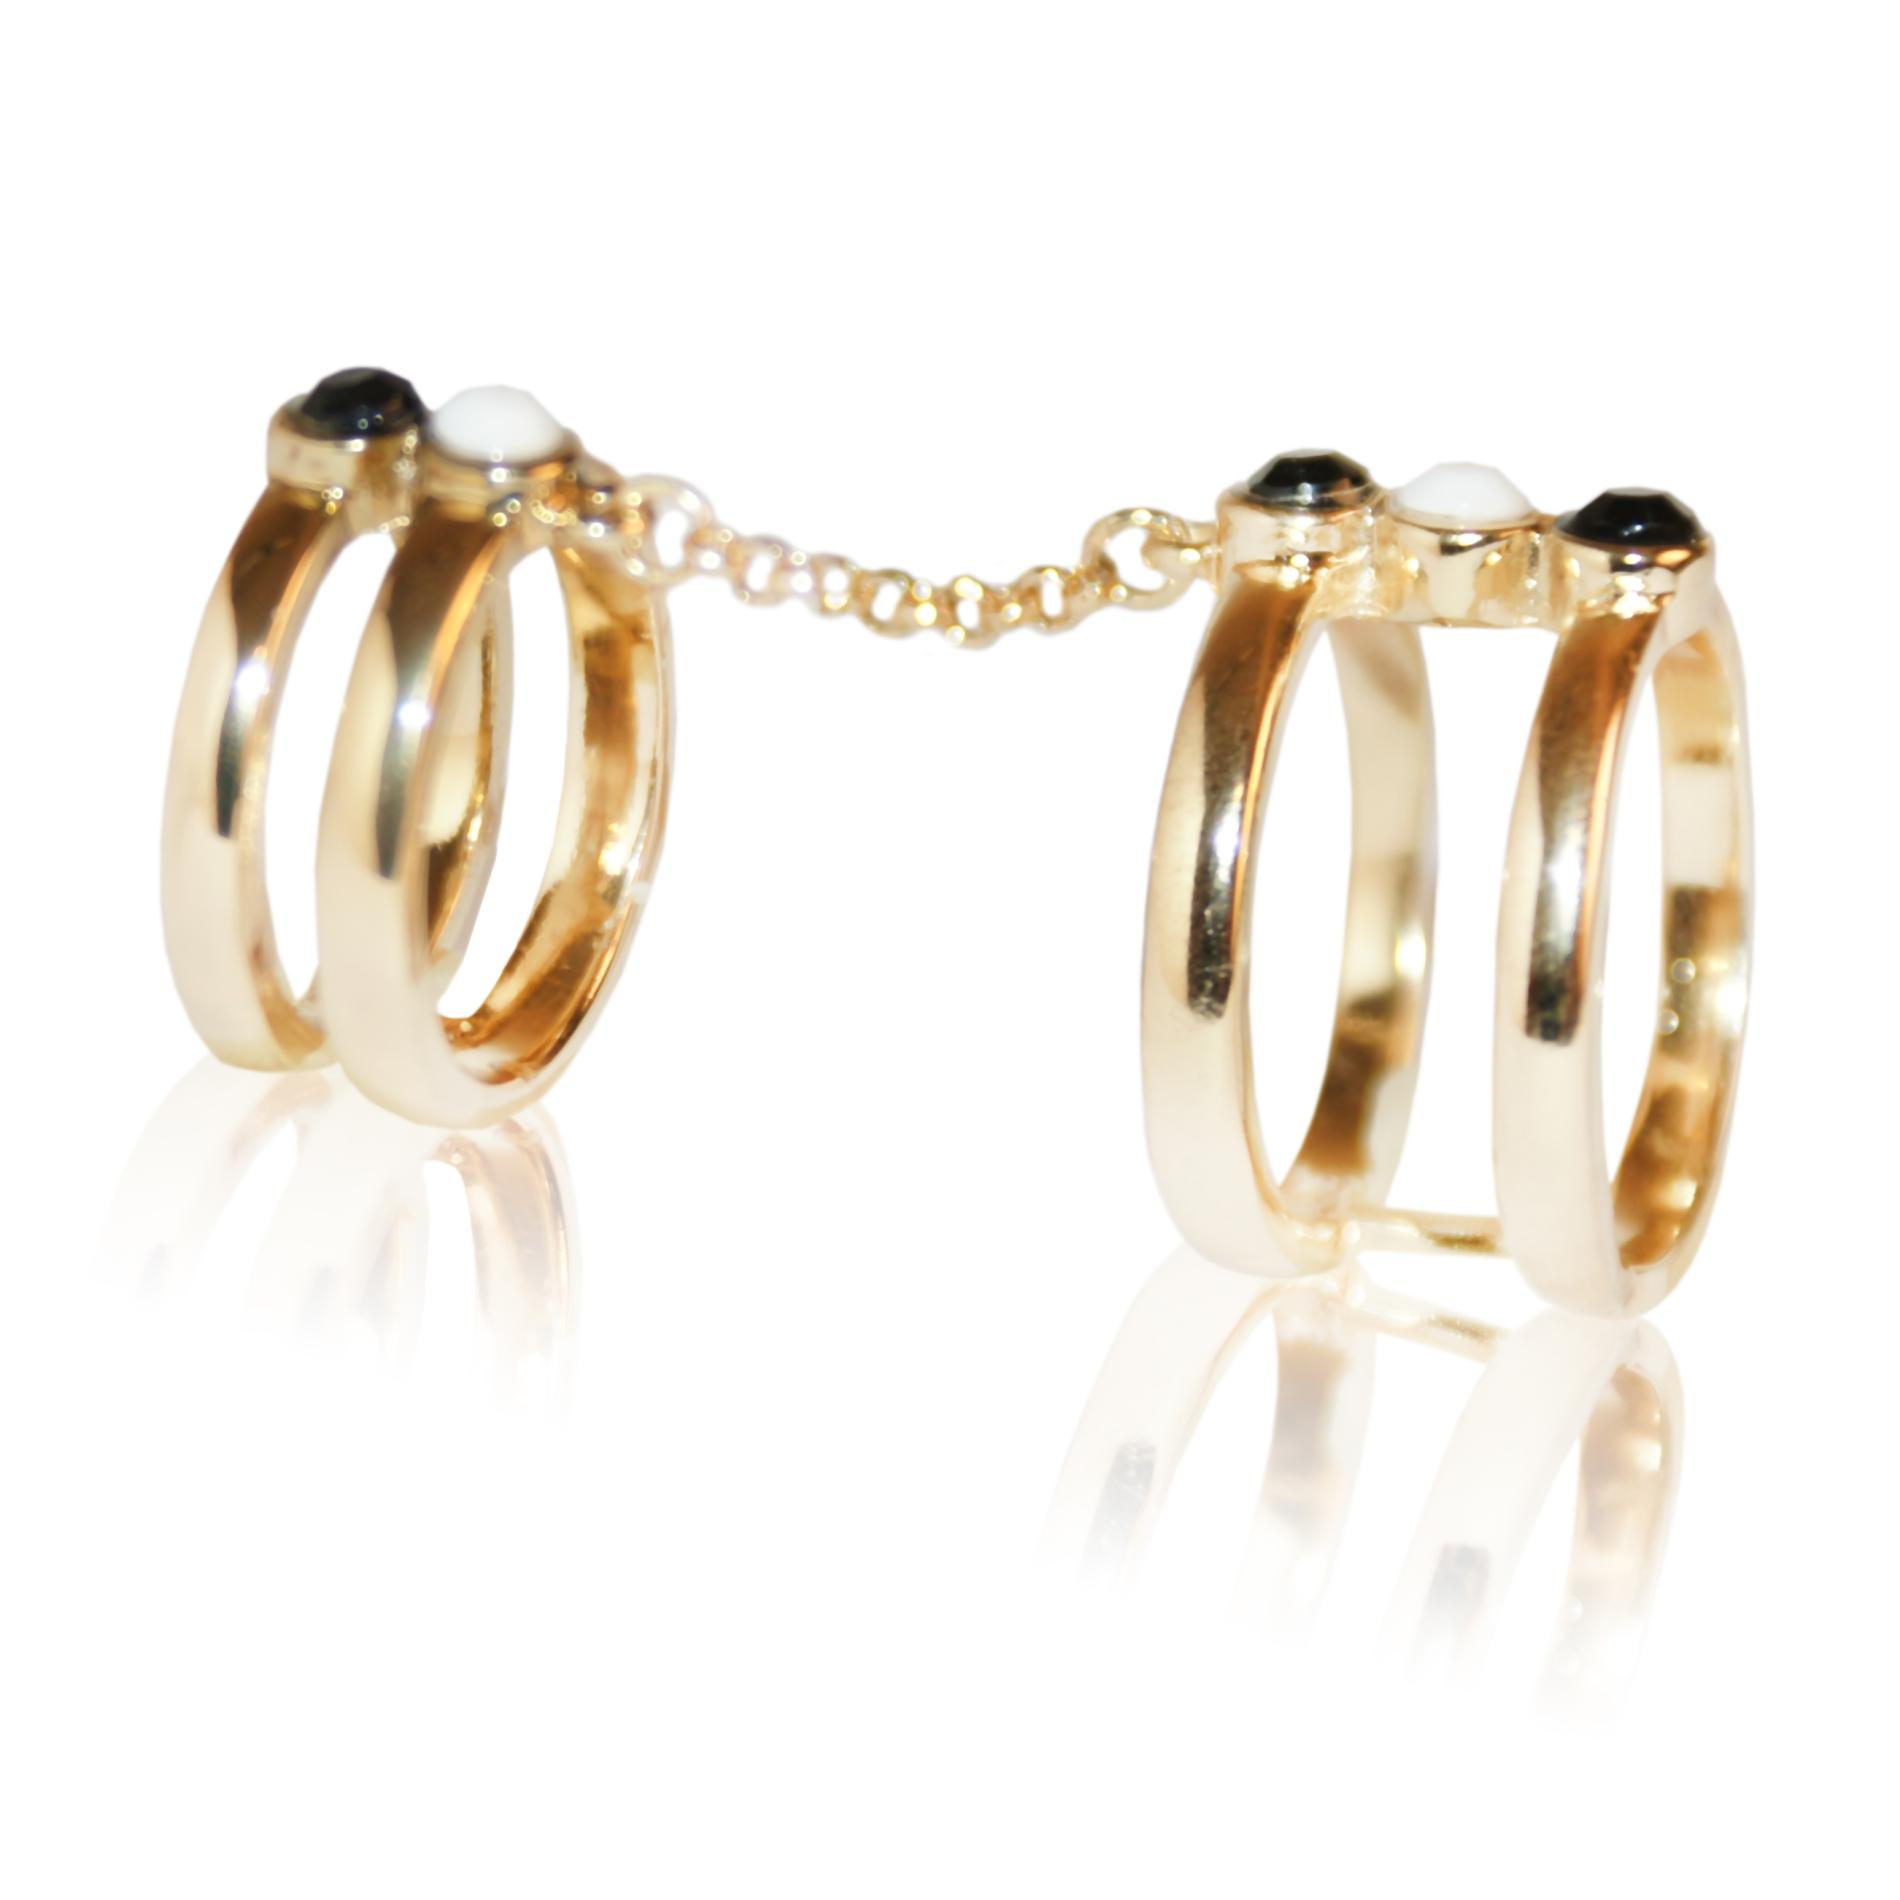 Women's Goldtone Beaded Double Chain Ring